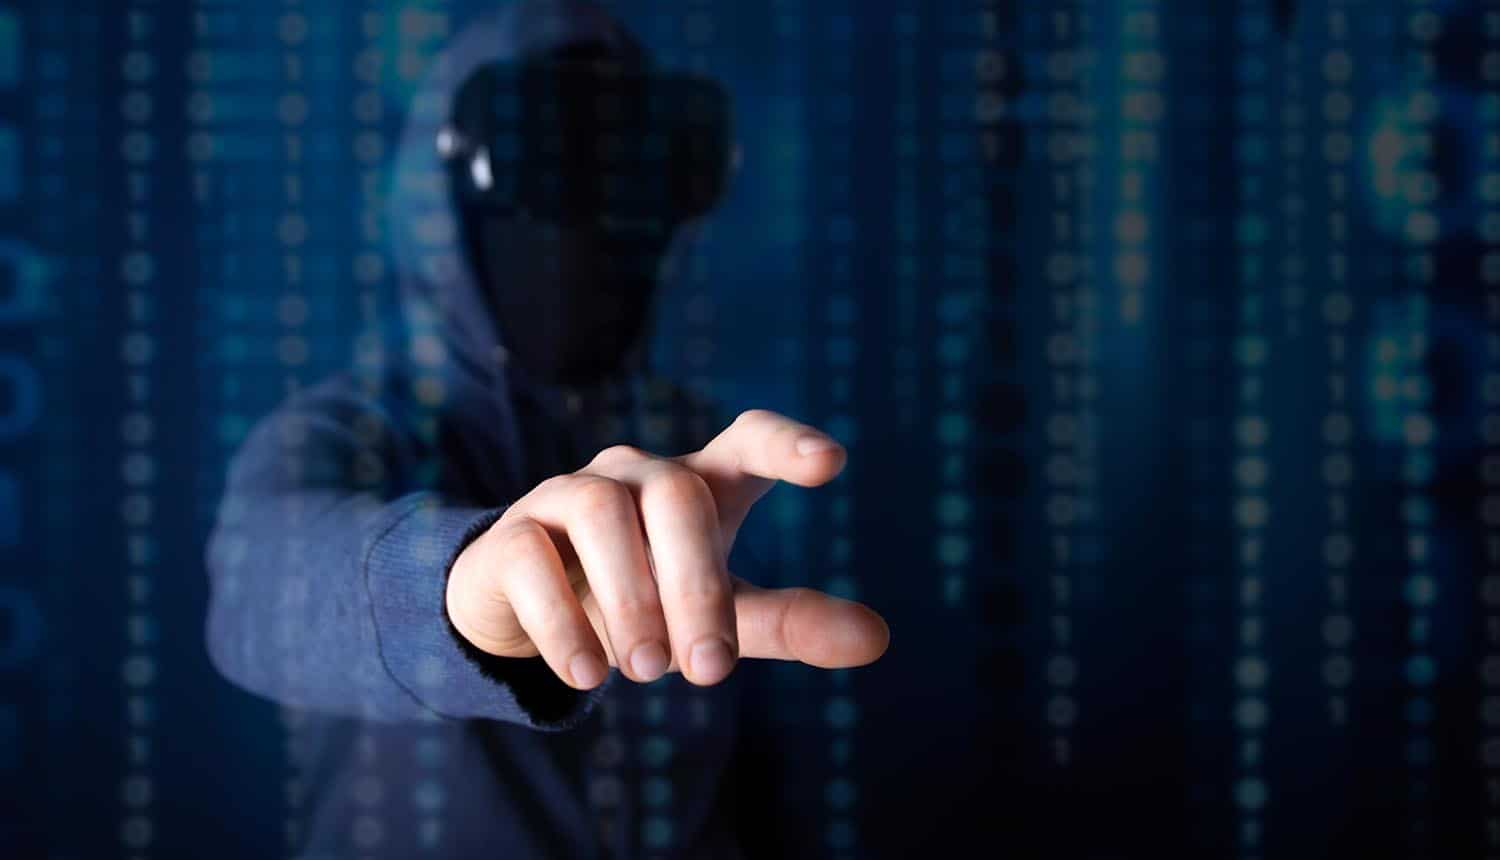 Hacker with hands reaching out showing piracy and need to prevent data loss